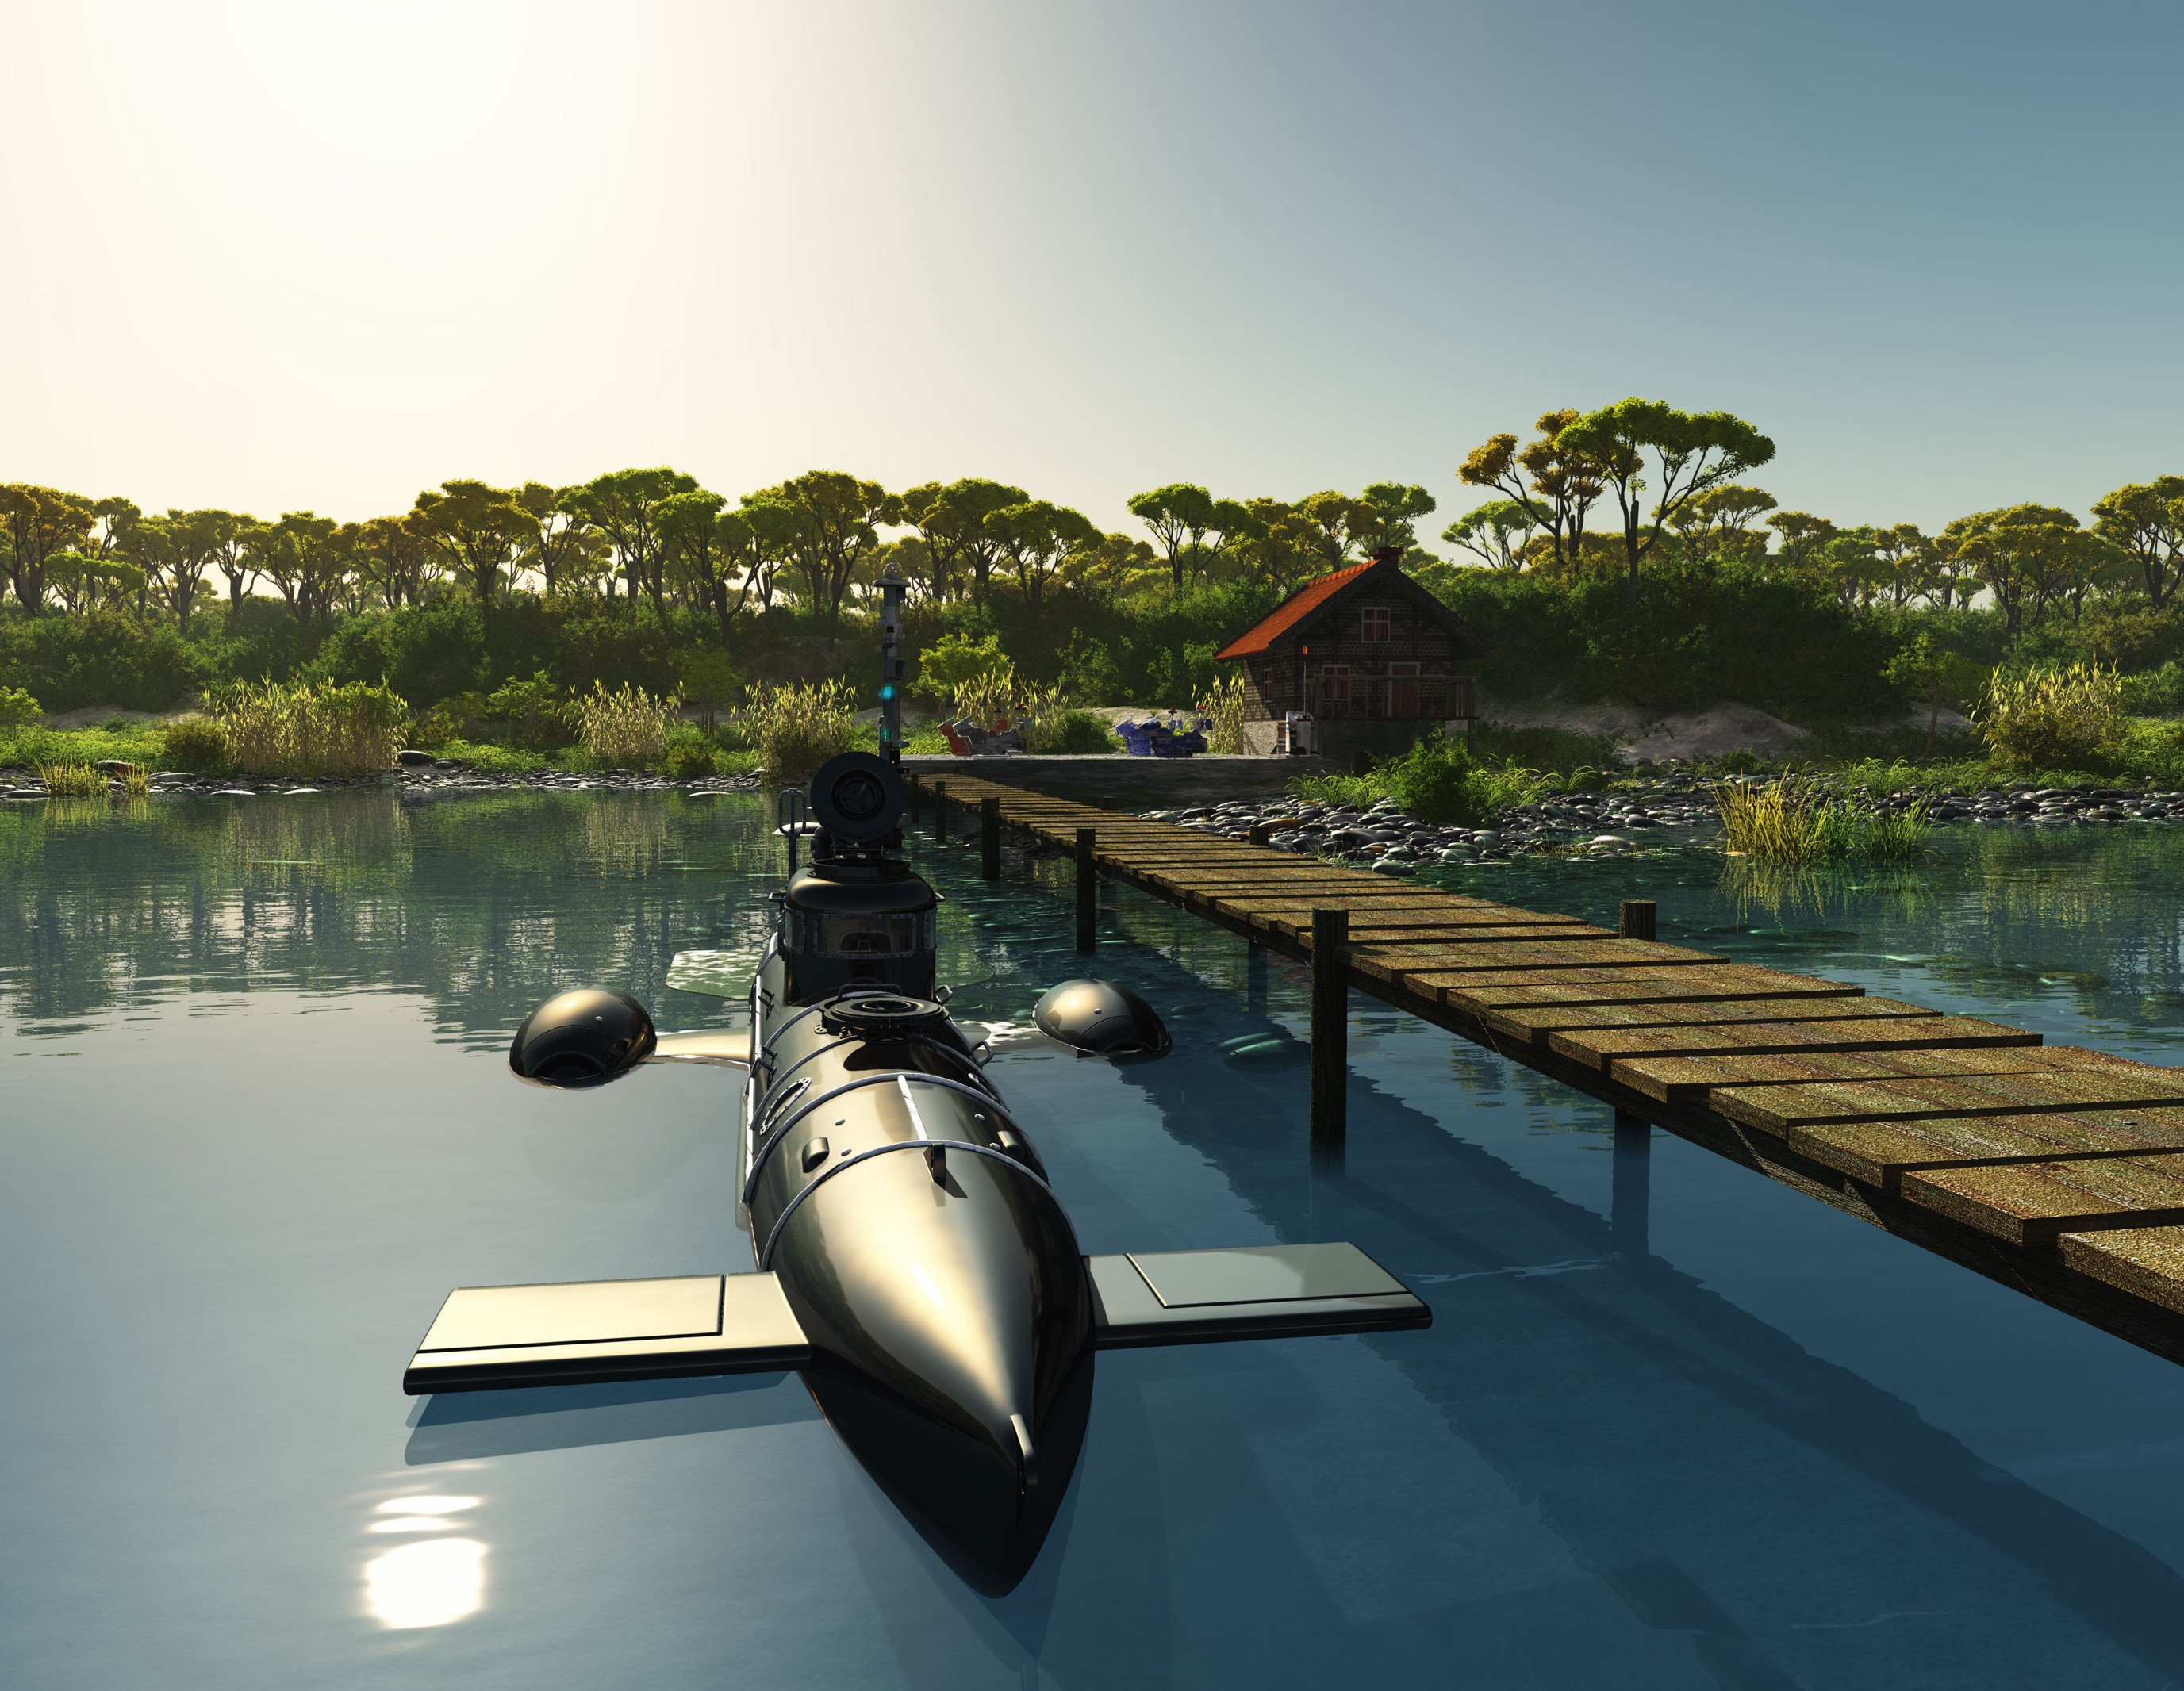 Another render view.